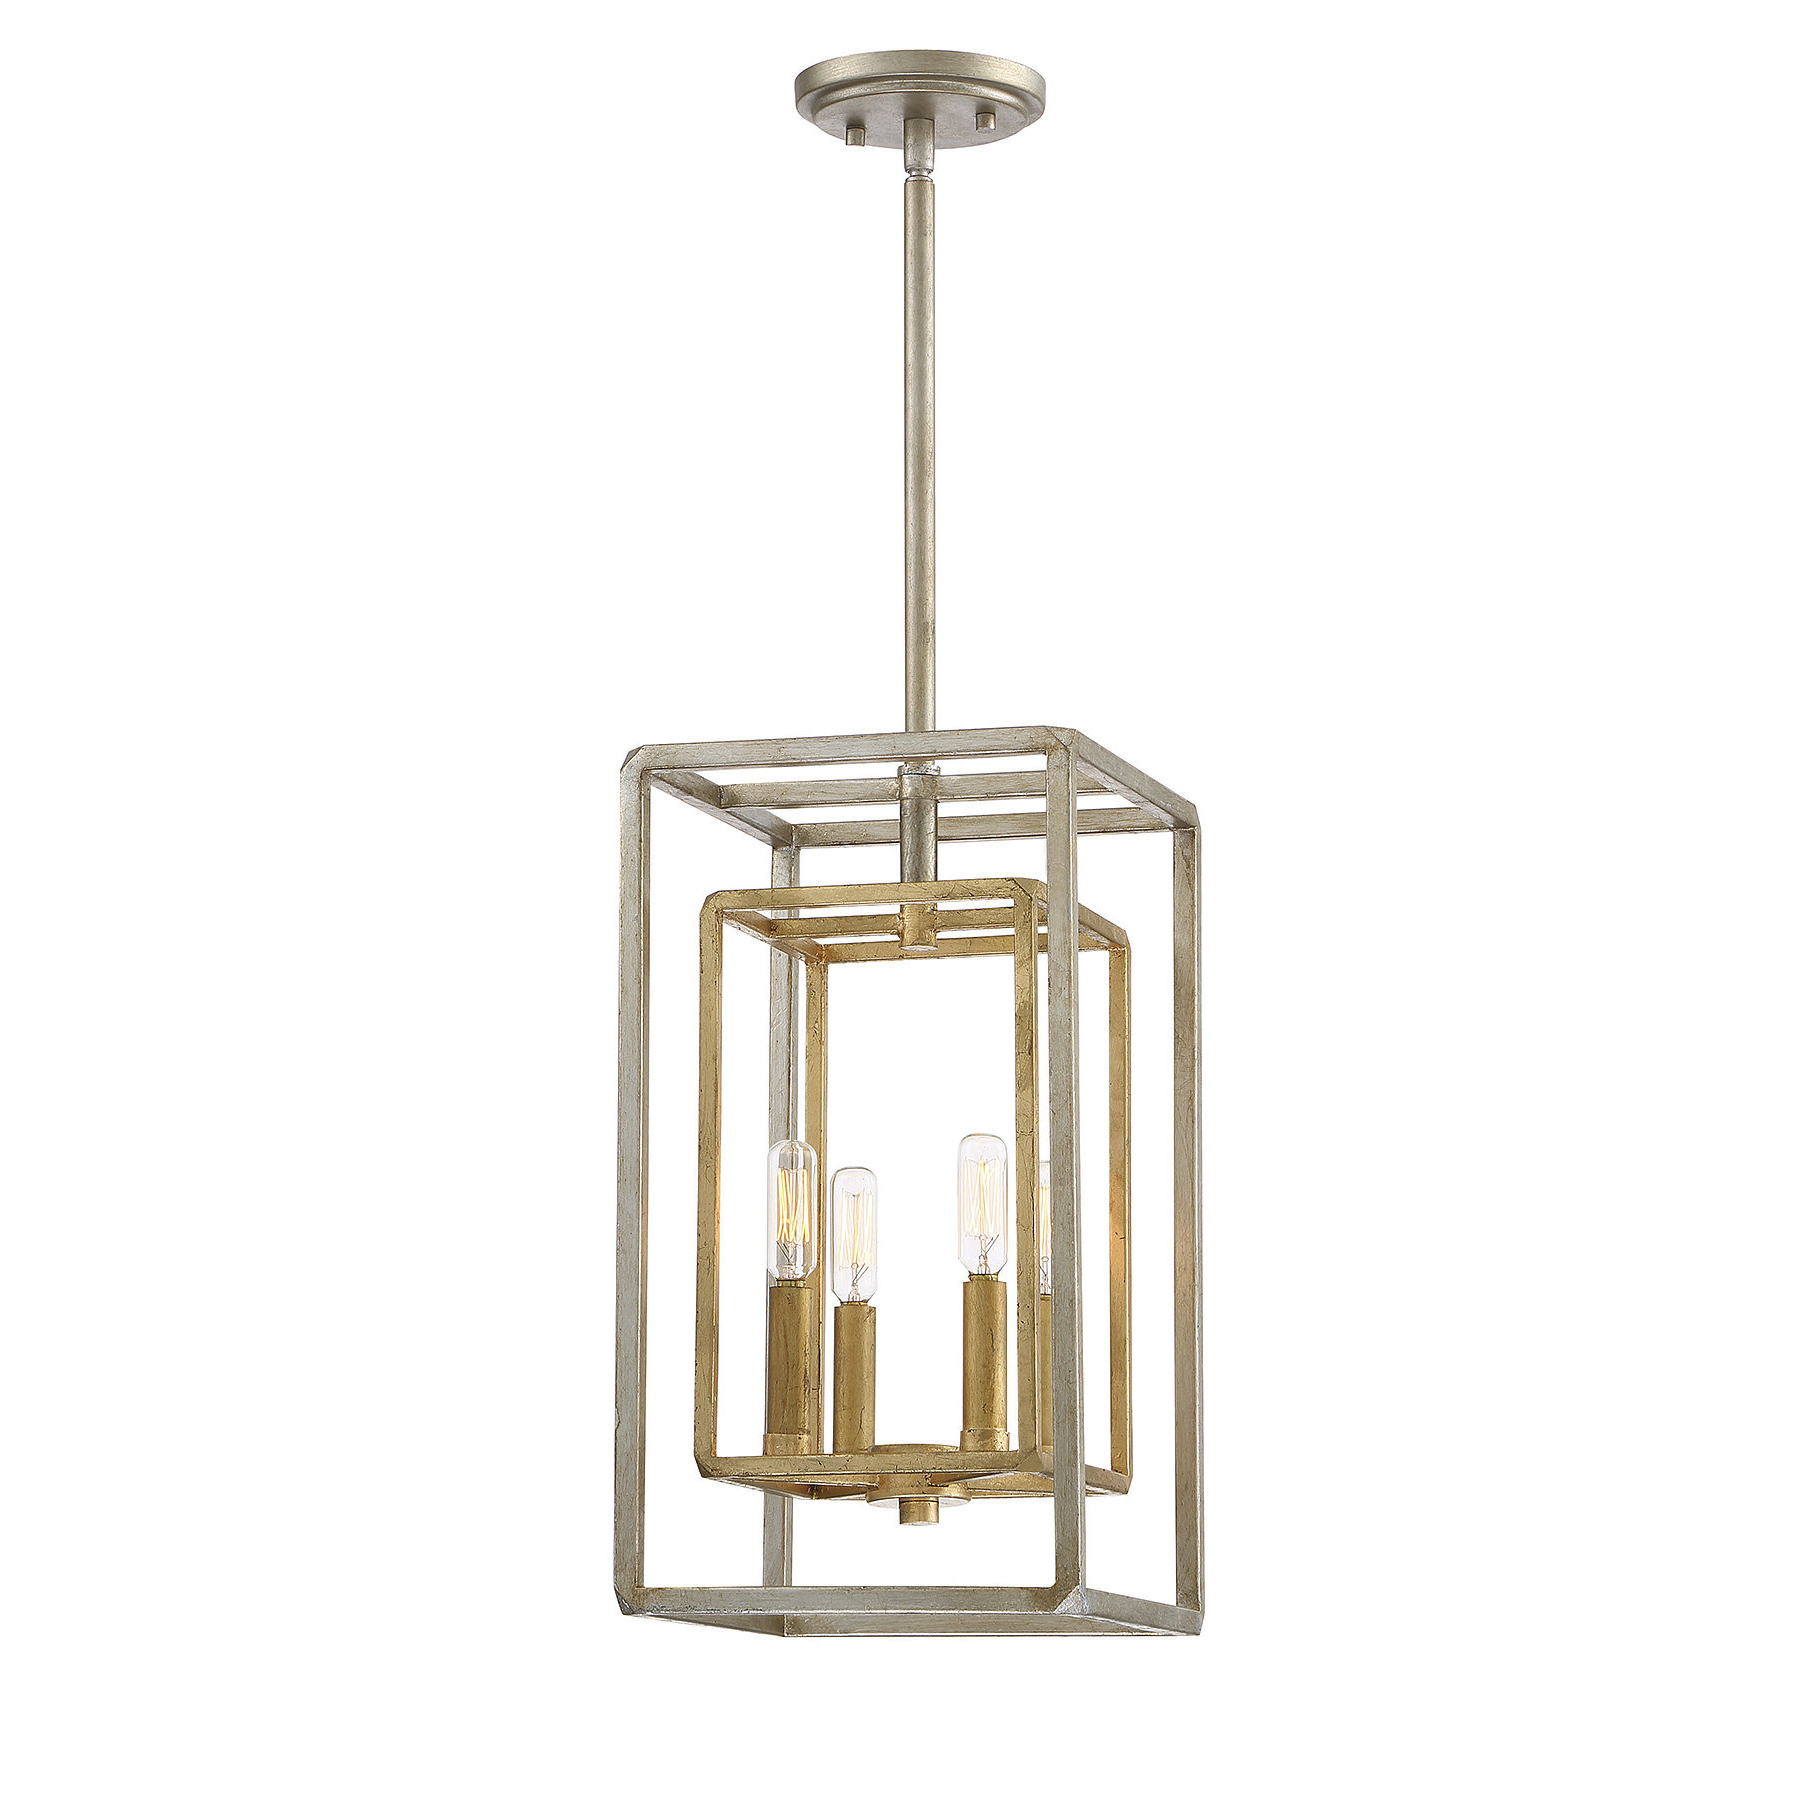 Sherri Ann 3 Light Lantern Square / Rectangle Pendants Inside Well Liked Eglantina 4 Light Lantern Square / Rectangle Pendant (View 15 of 25)